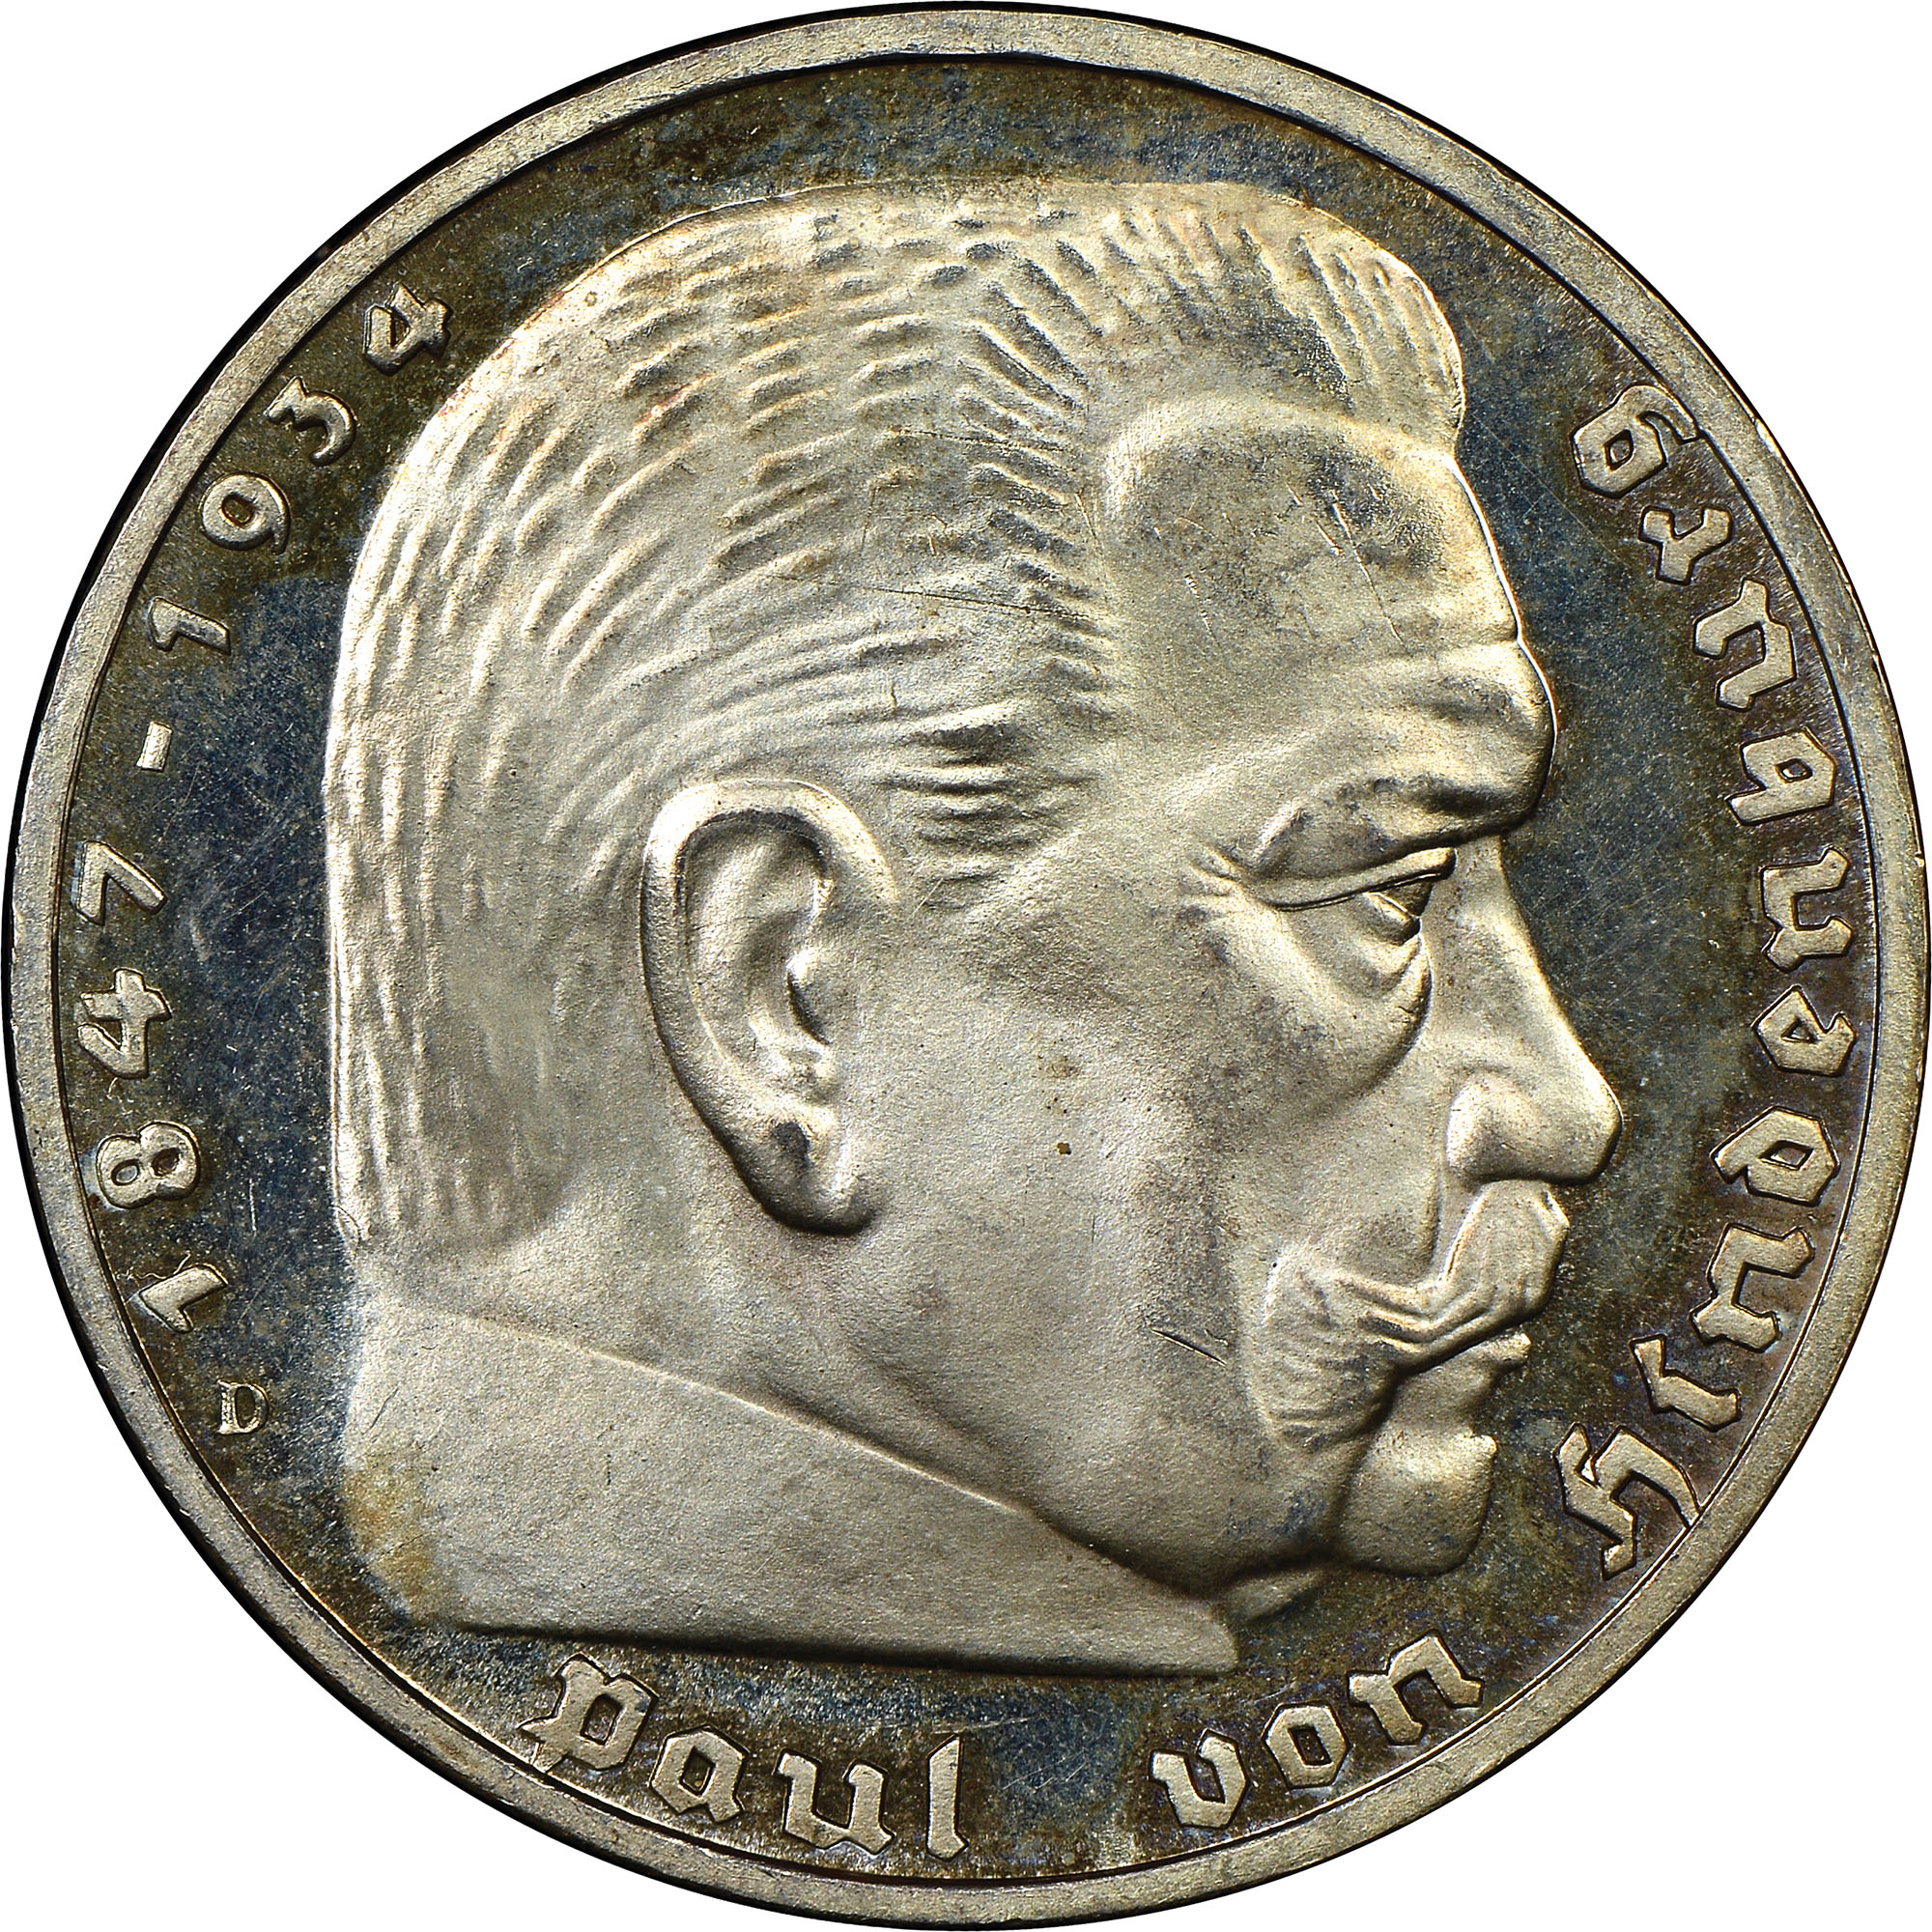 Germany - Third Reich 5 Reichsmark reverse